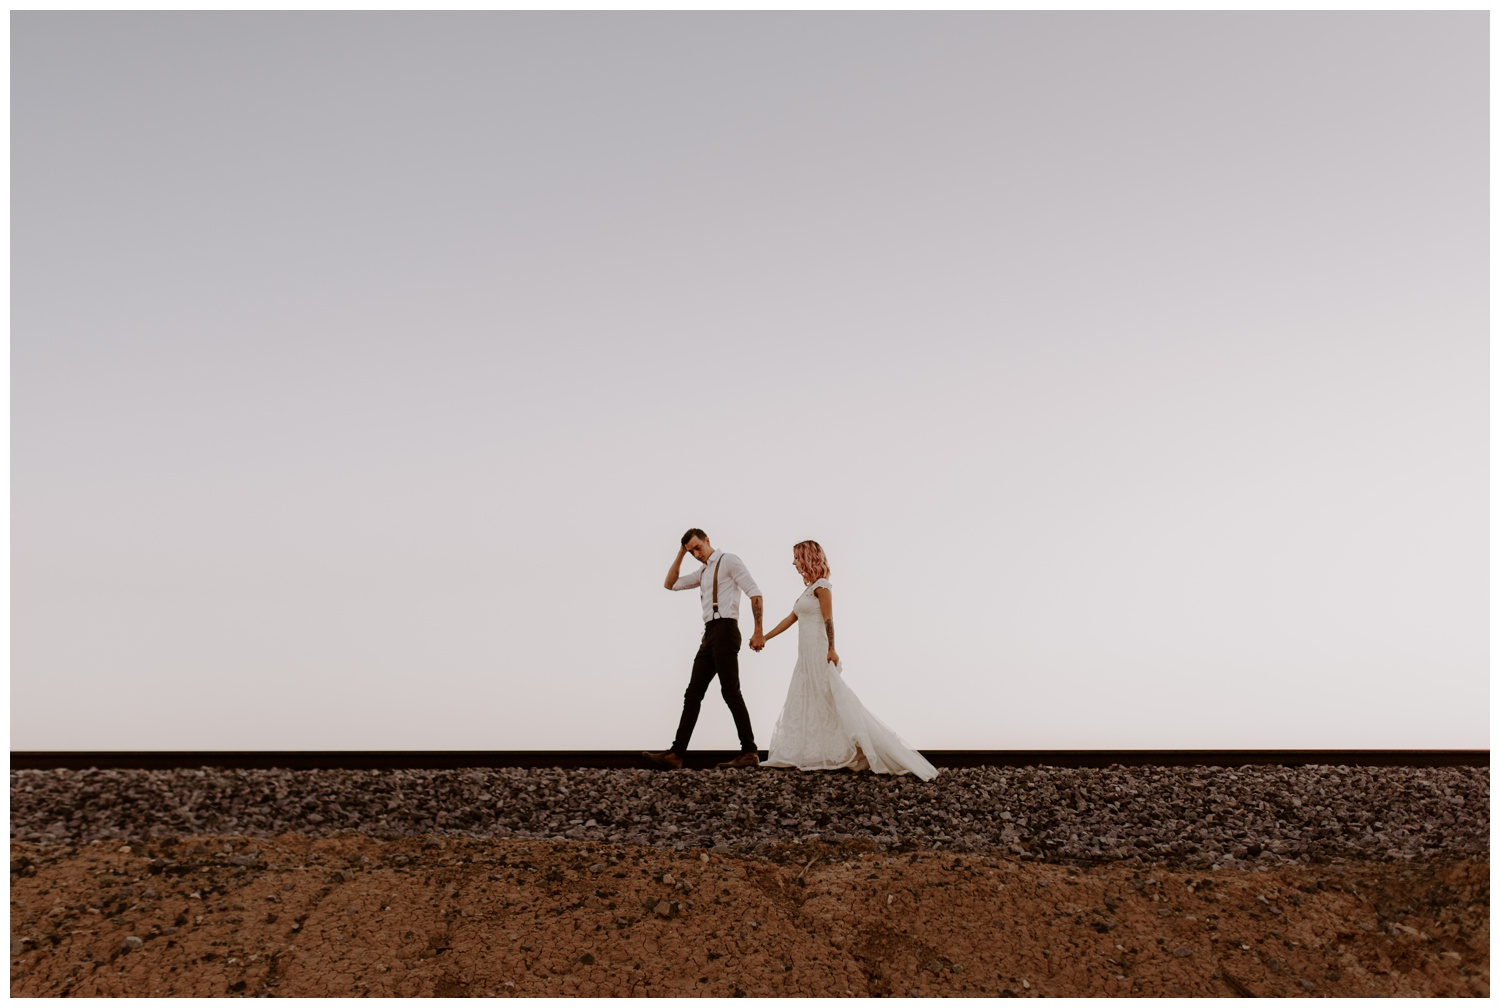 Kira and Brayden Elopement Highlights - Jessica Heron Images 053.jpg